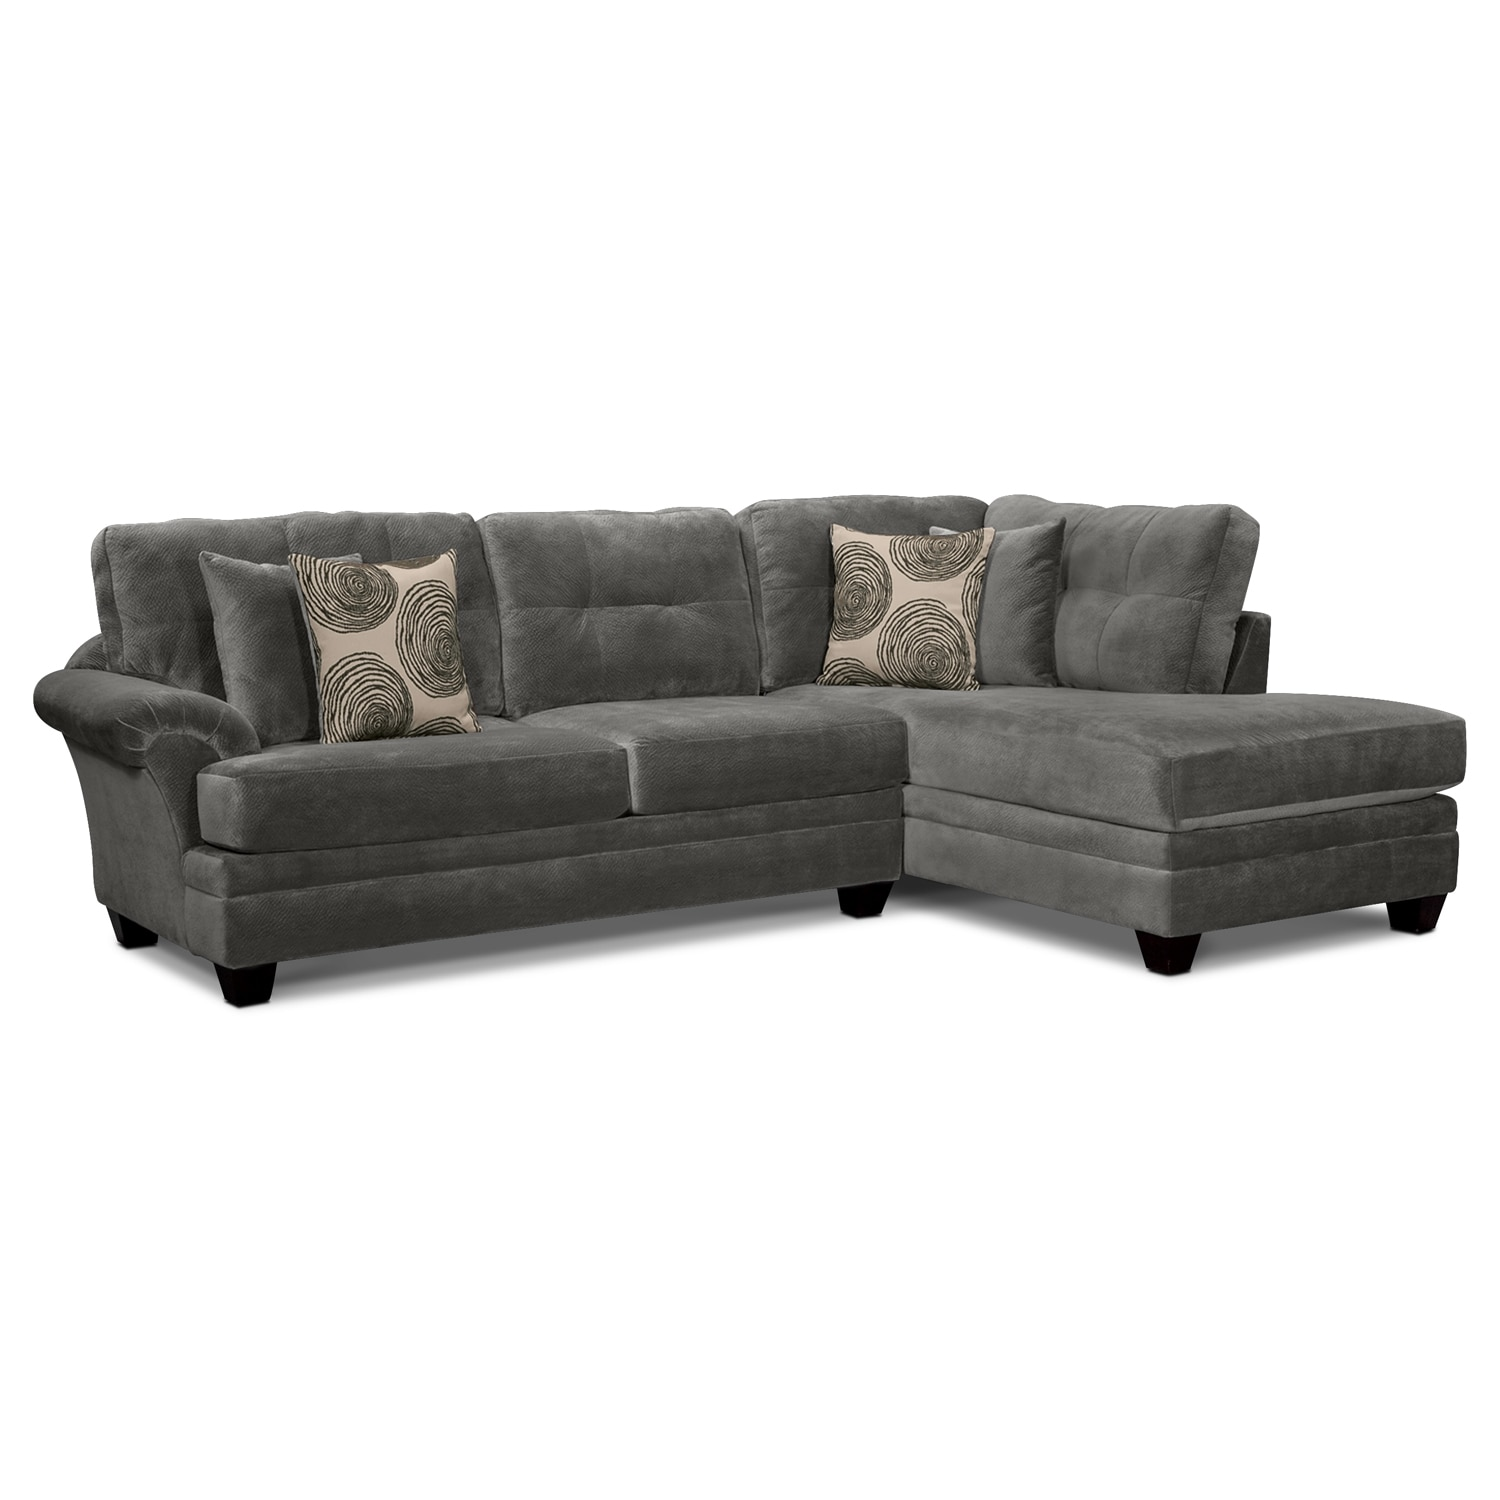 Sectionals Living Room Sectional Sofas Value City Funiture Value City Furniture